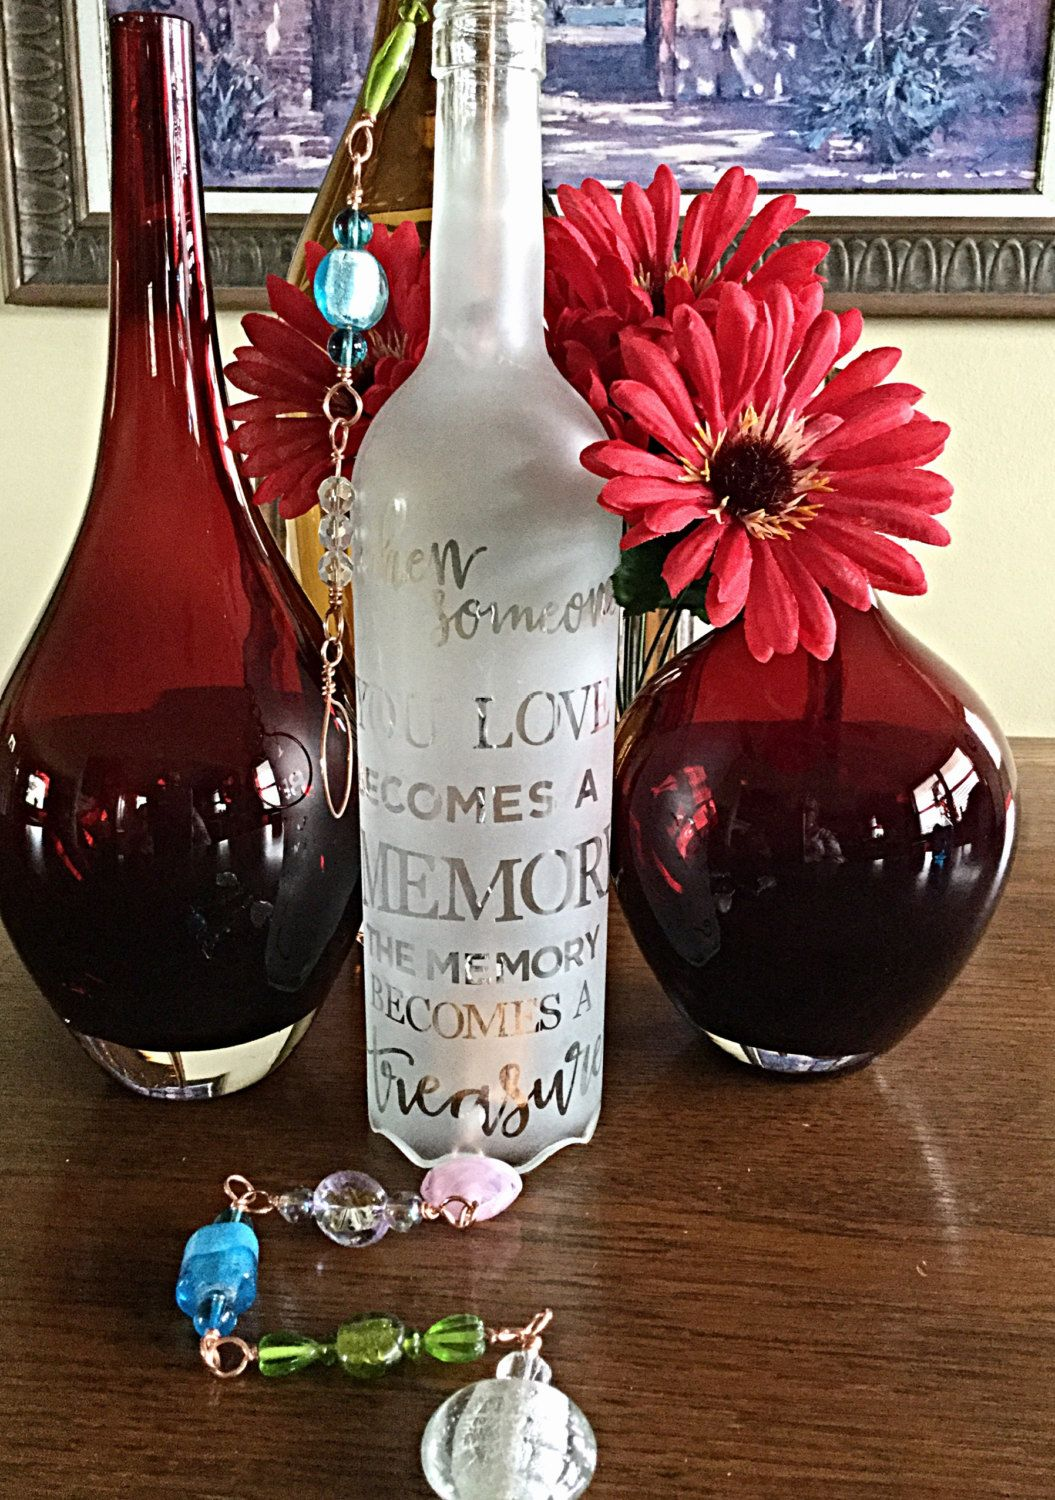 Personalized Engraved Sympathy Wind Chimes Glass Bottles Etsy Sympathy Wind Chimes Wind Chimes Personalized Glass